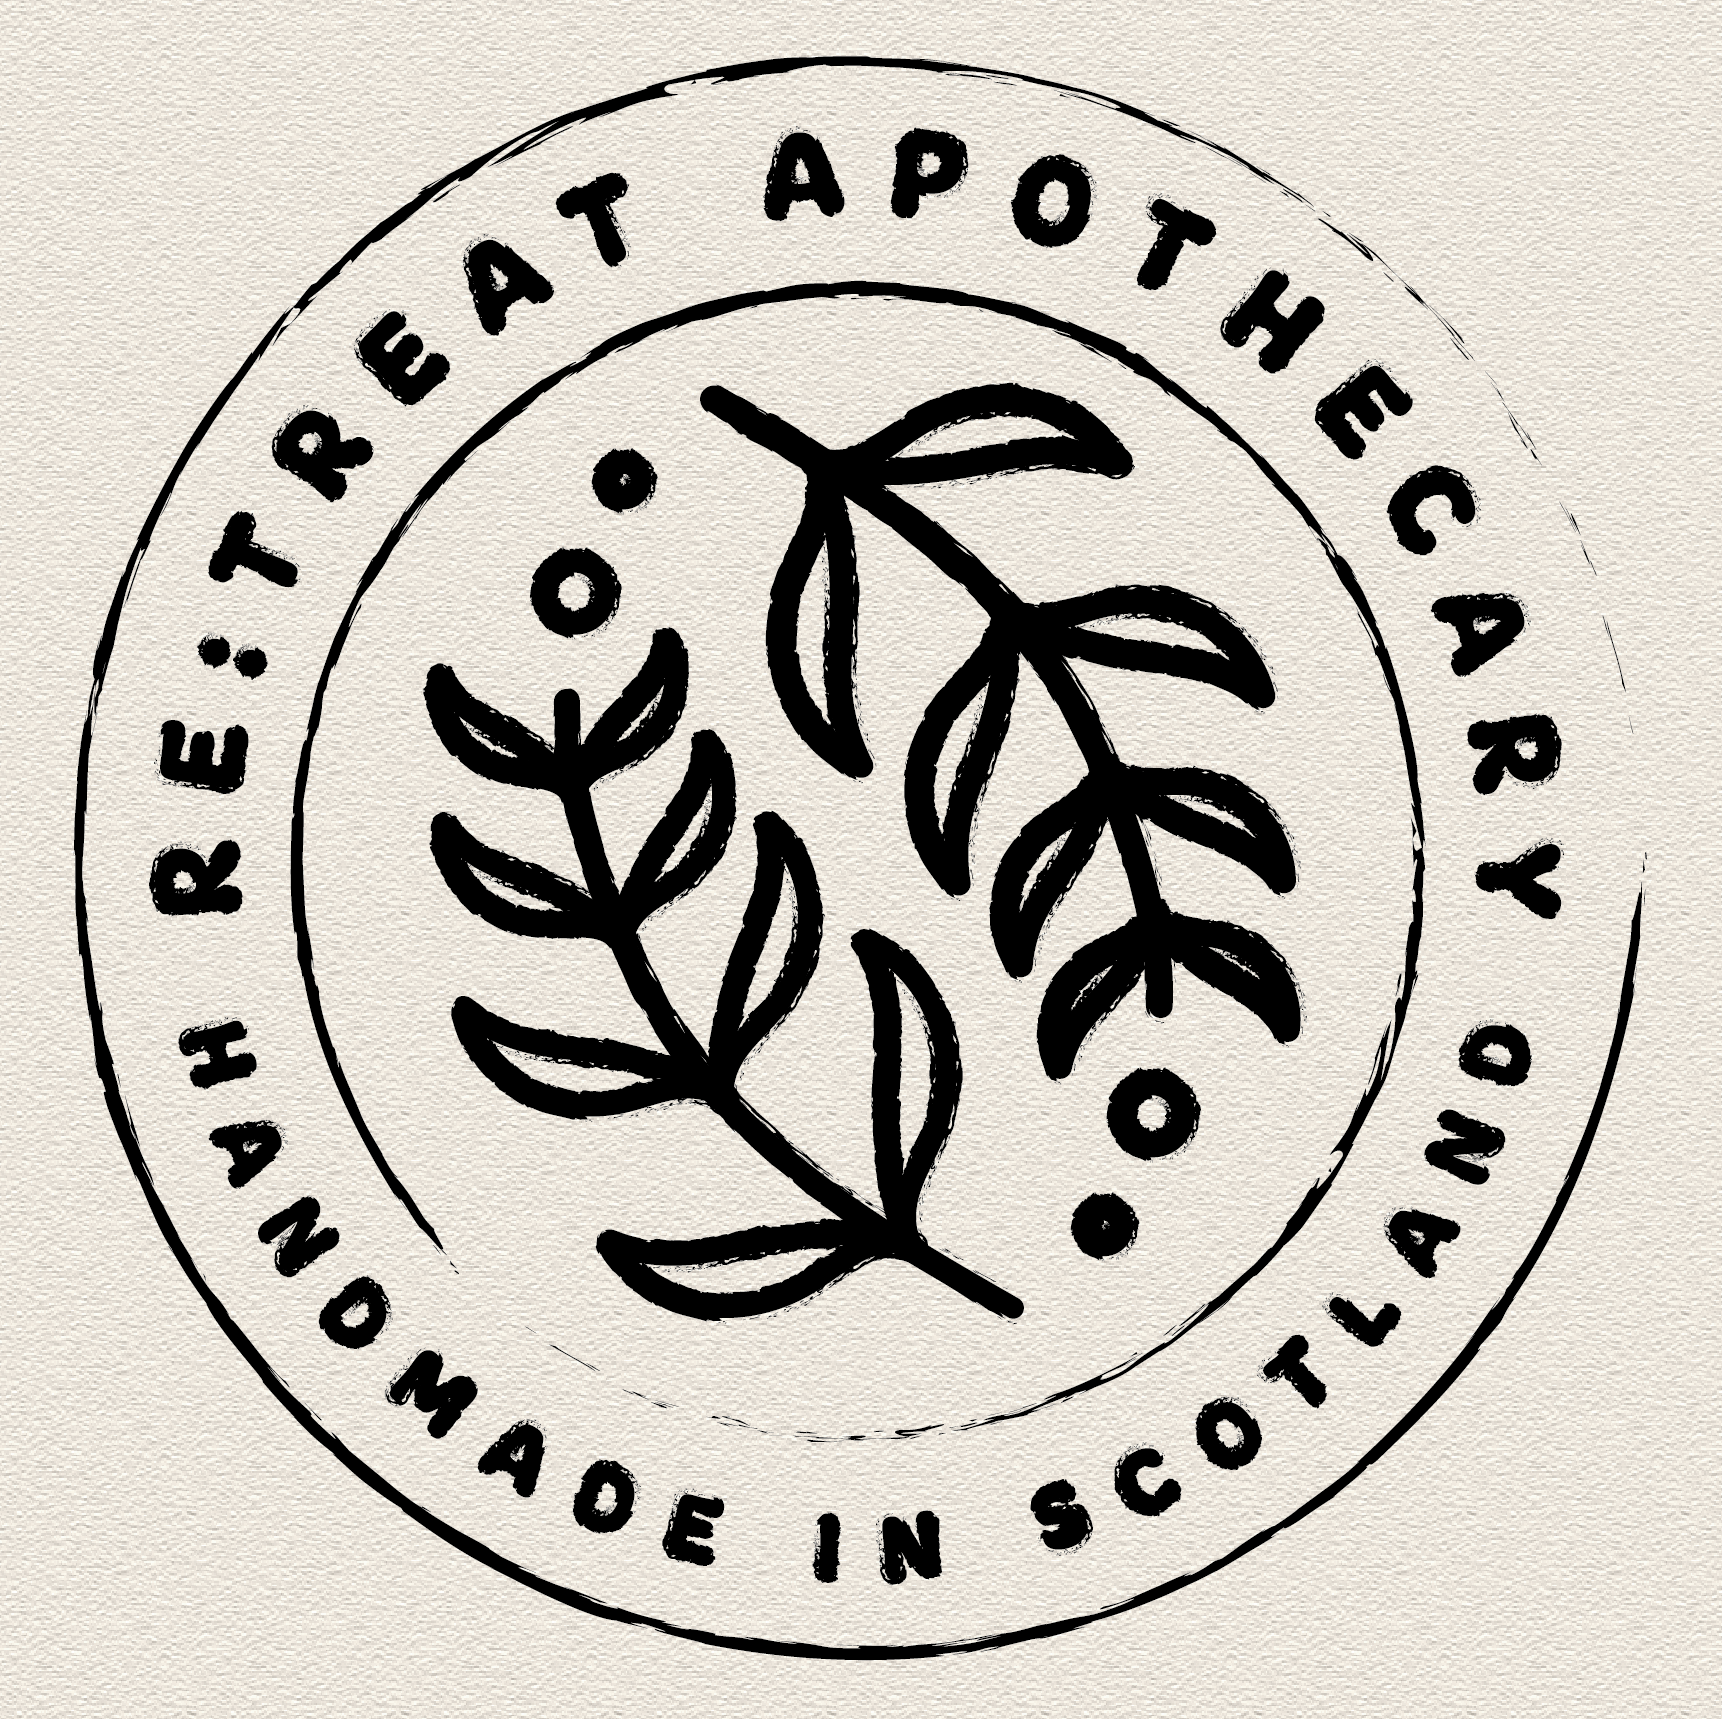 re:treat Apothecary